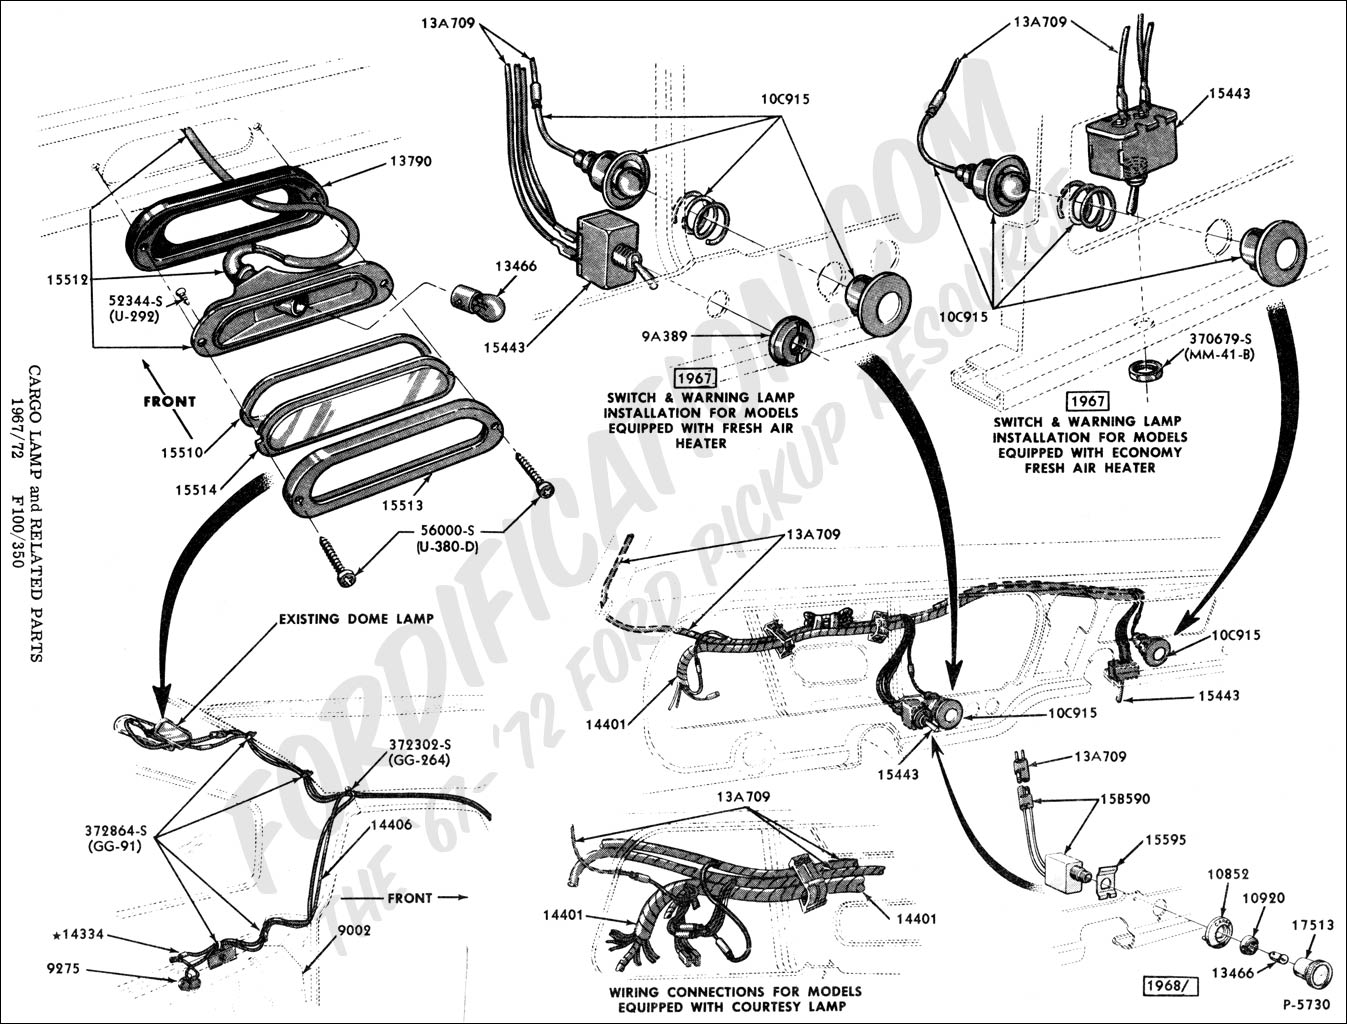 cargolight ford truck technical drawings and schematics section i 1969 Ford F100 Steering Column Wiring Diagram at crackthecode.co